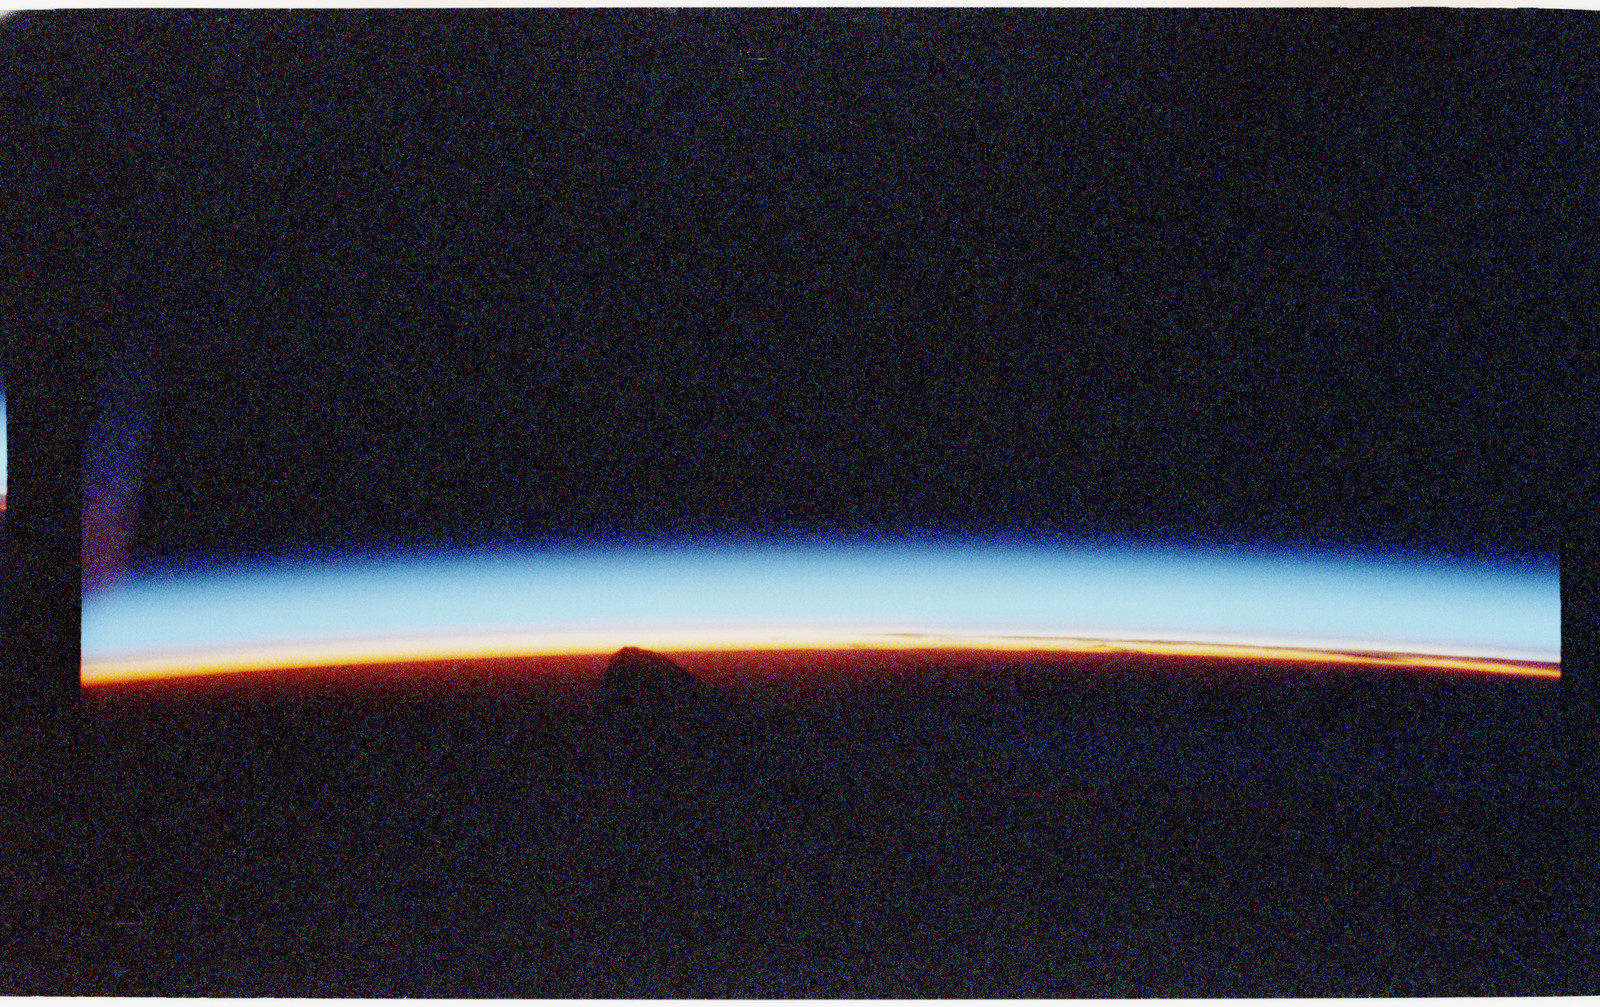 STS056-36-030 - STS-056 - Earth observation view of a sunrise - location unknown.